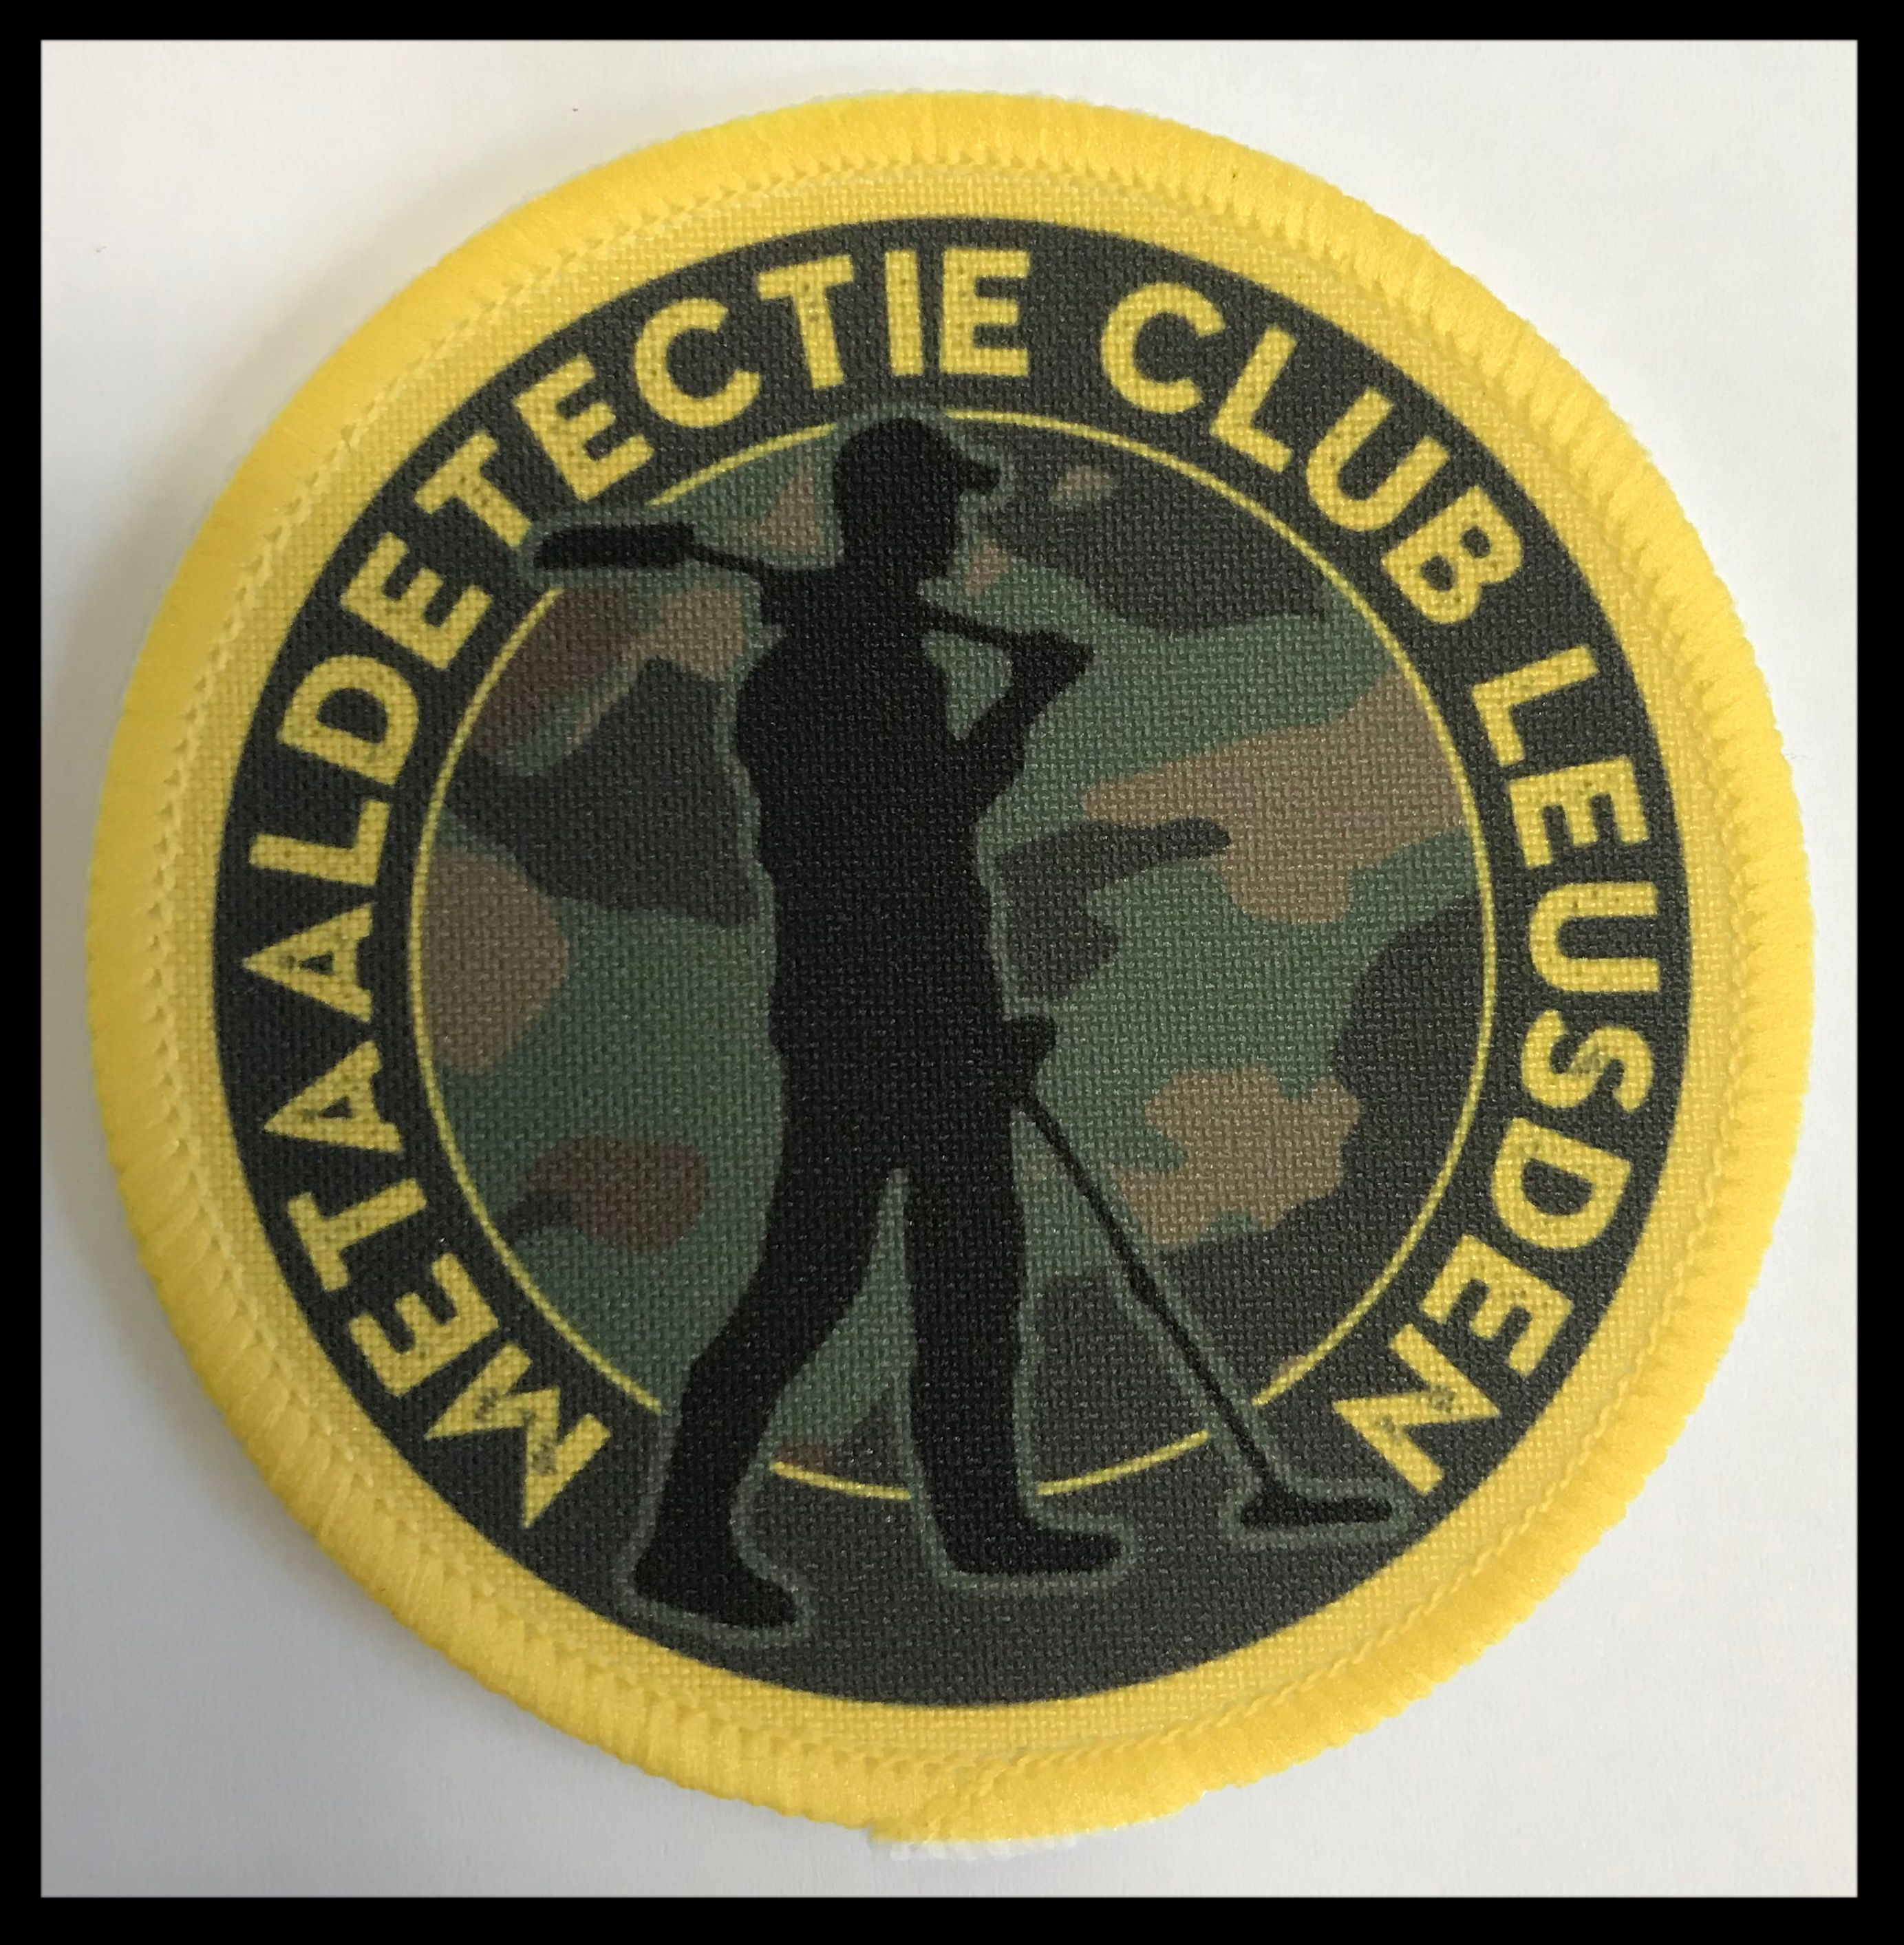 Metal Detecting Patches Metal Detecting Metal Patches